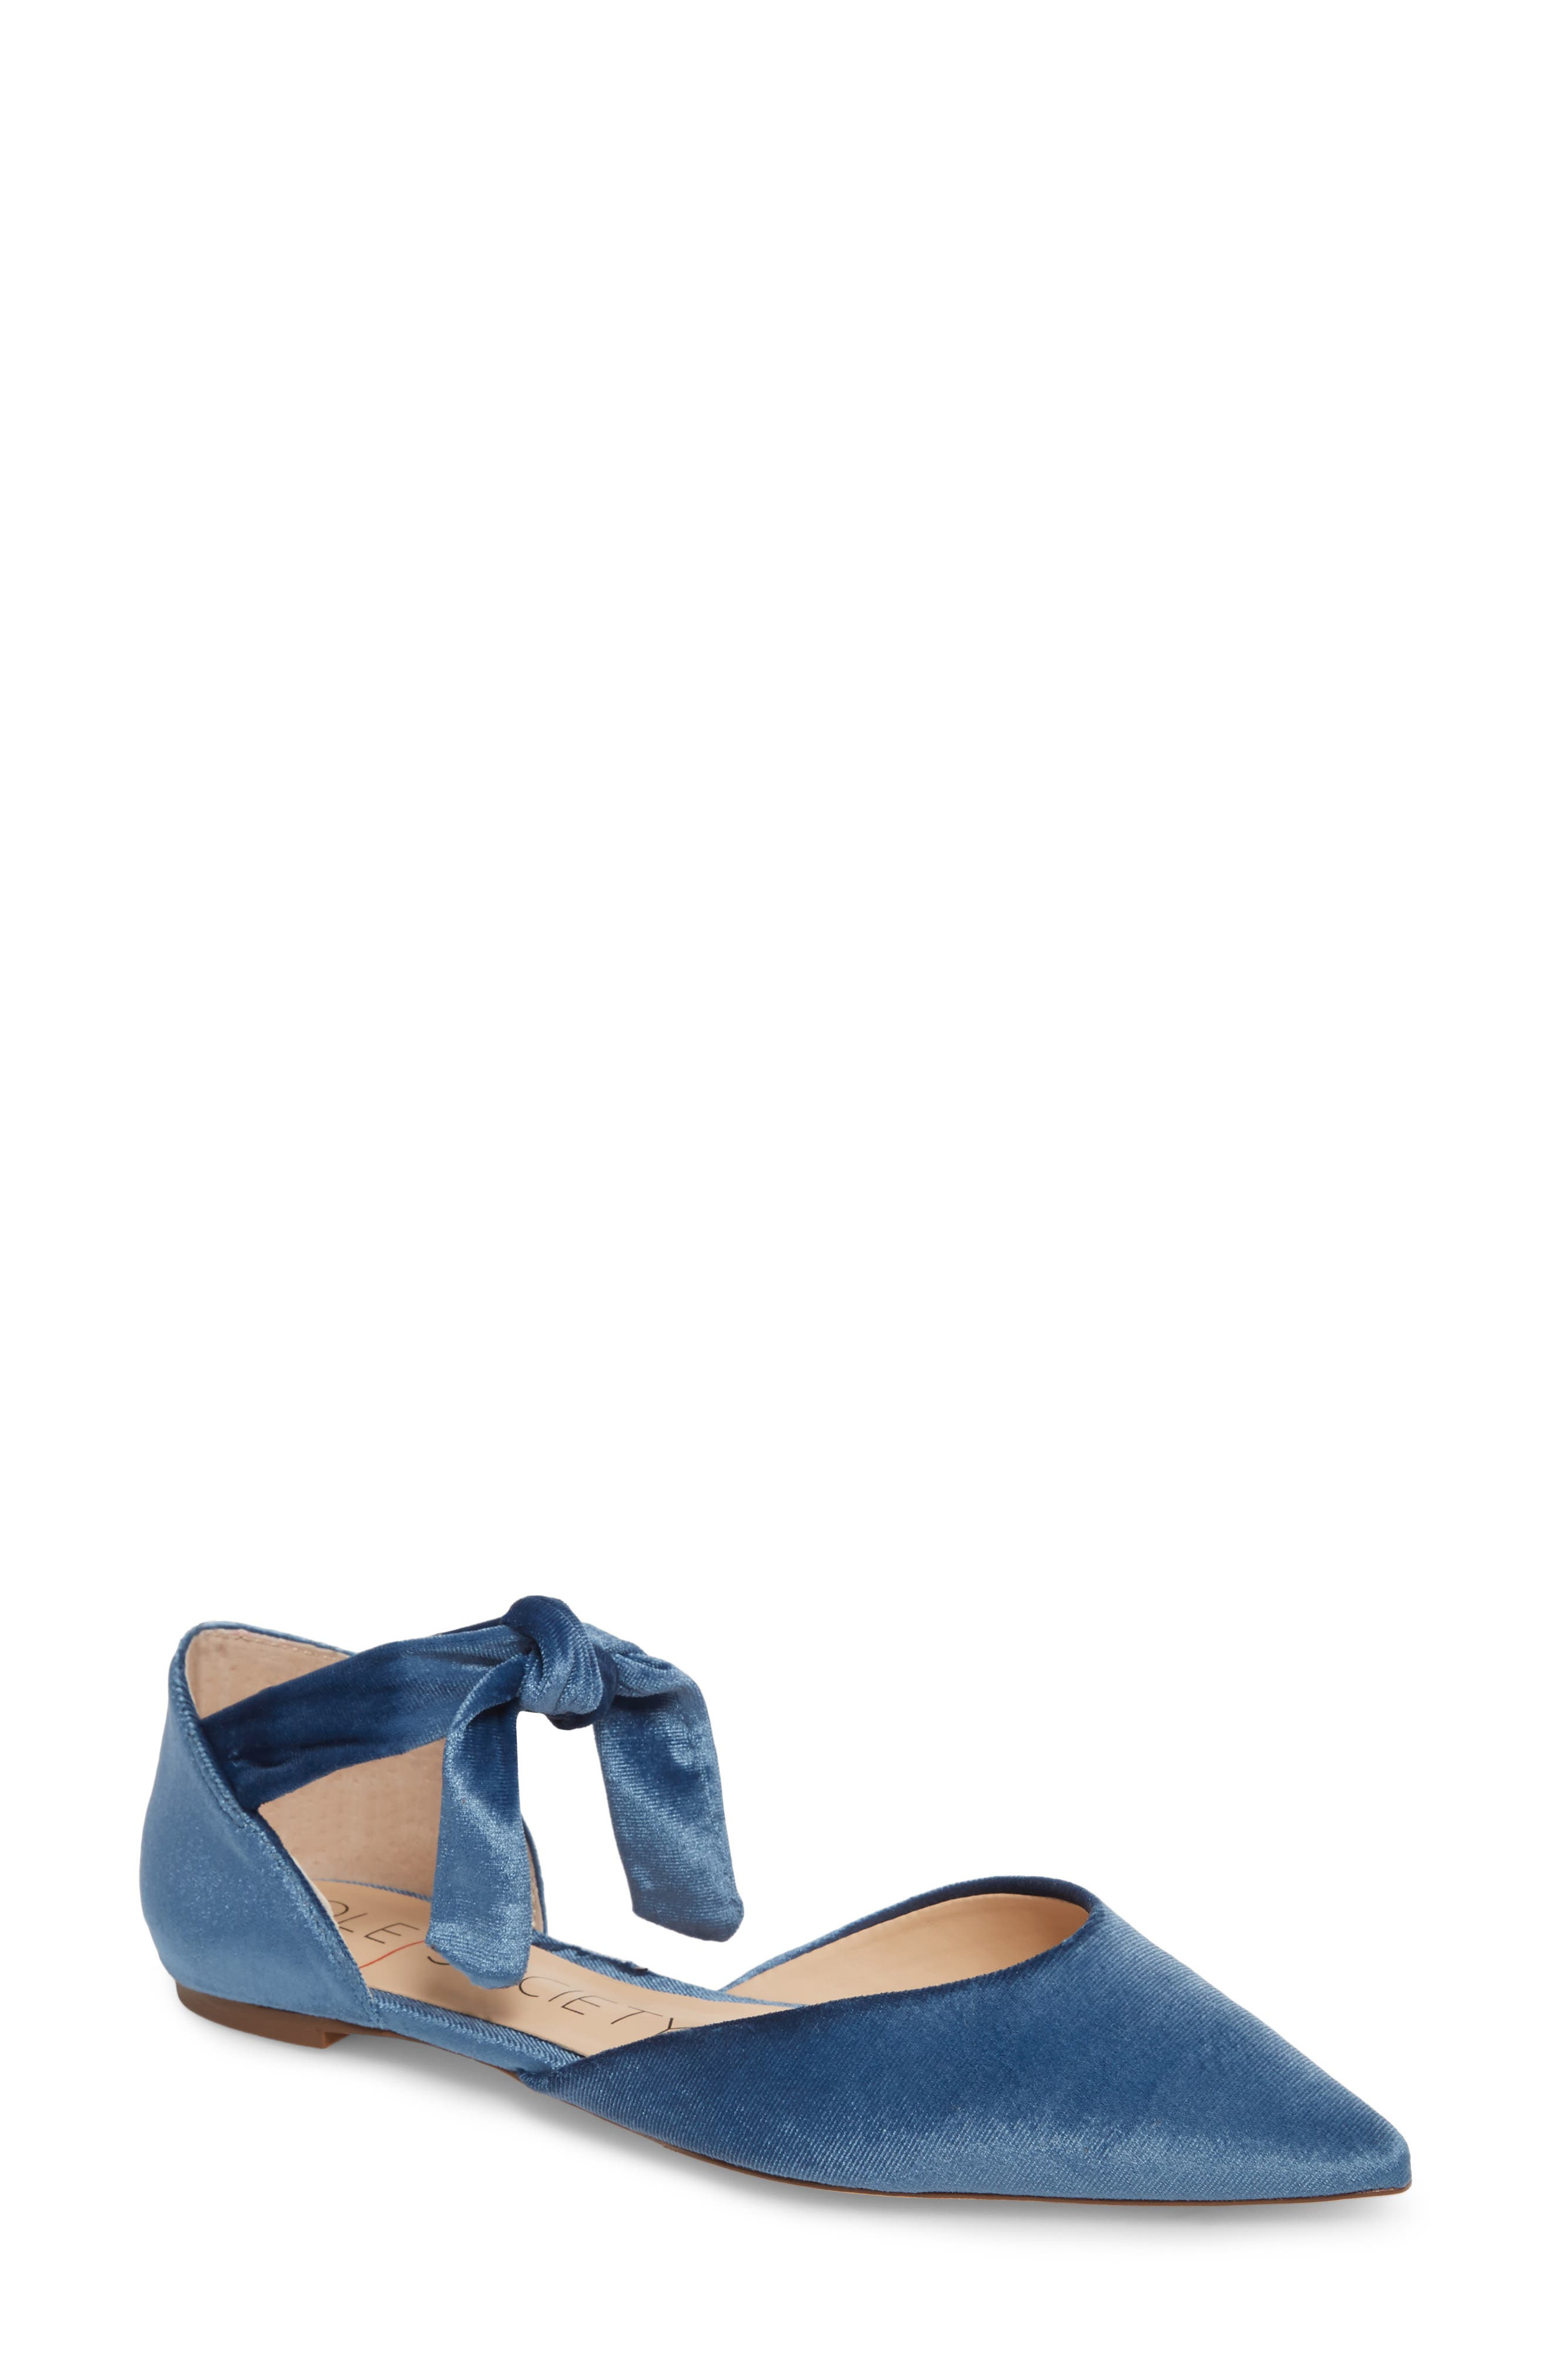 Alternate Image 1 Selected - Sole Society Teena d'Orsay Flat with Ties (Women)